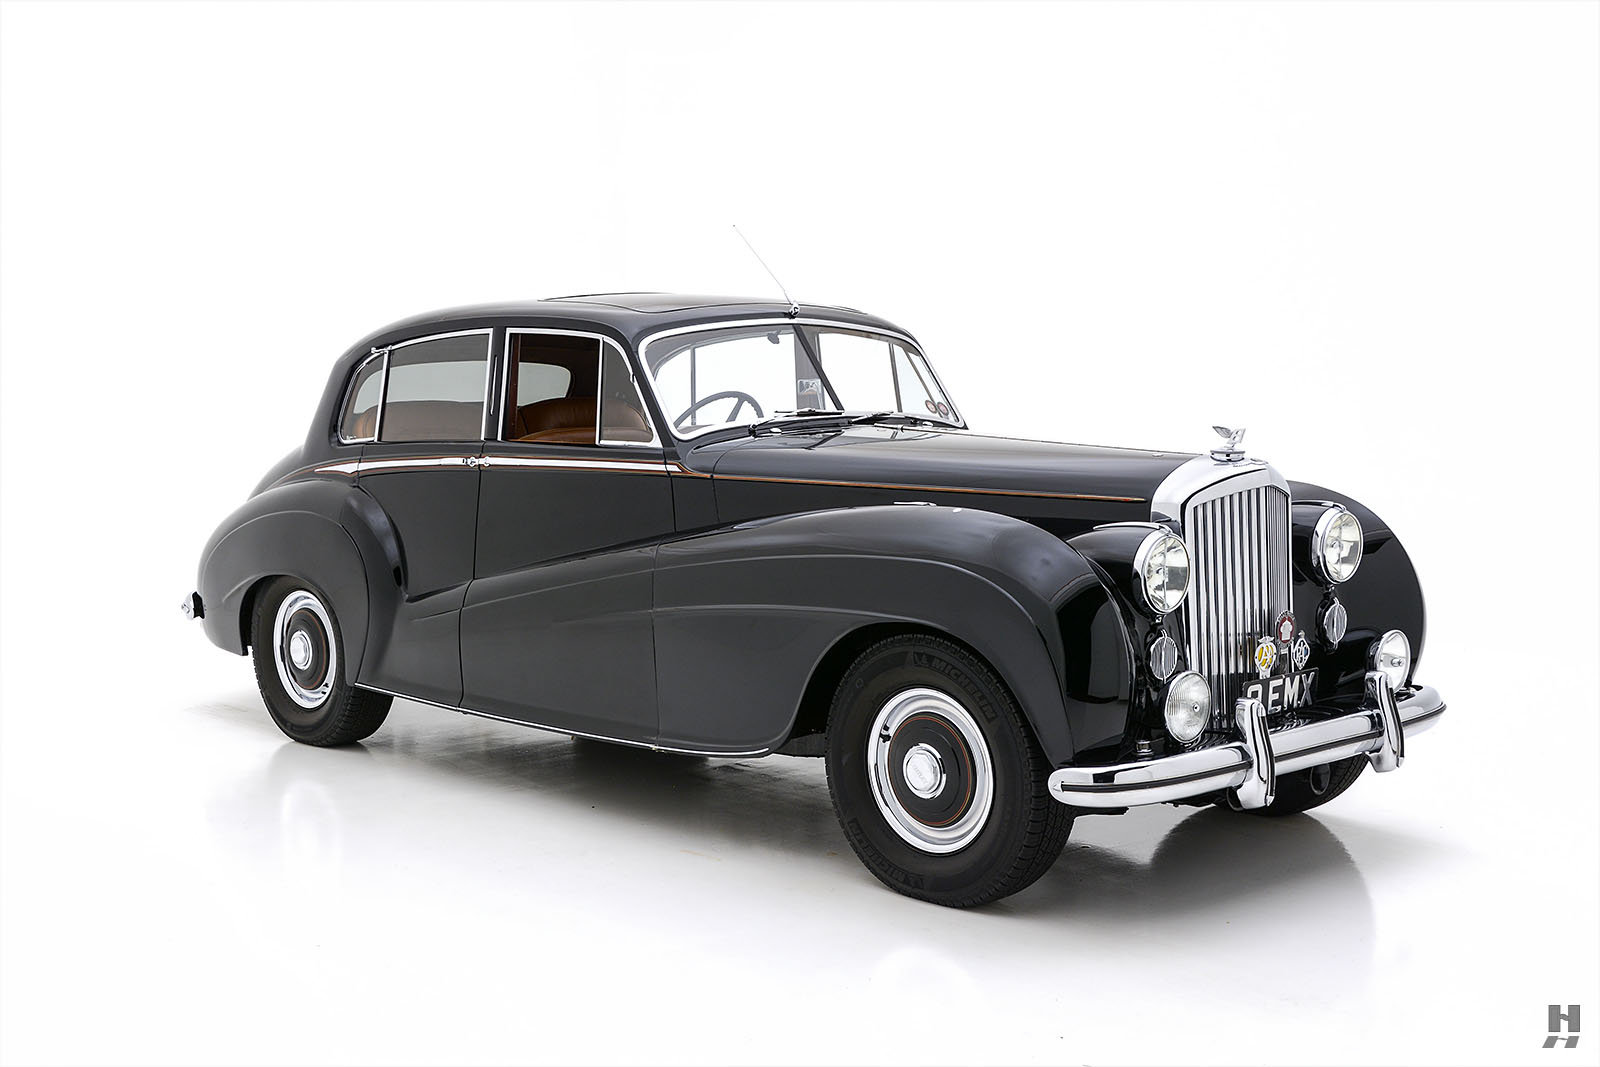 1951 BENTLEY MARK VI MULLINER LIGHTWEIGHT SPORTS SALOON For Sale (picture 2 of 6)